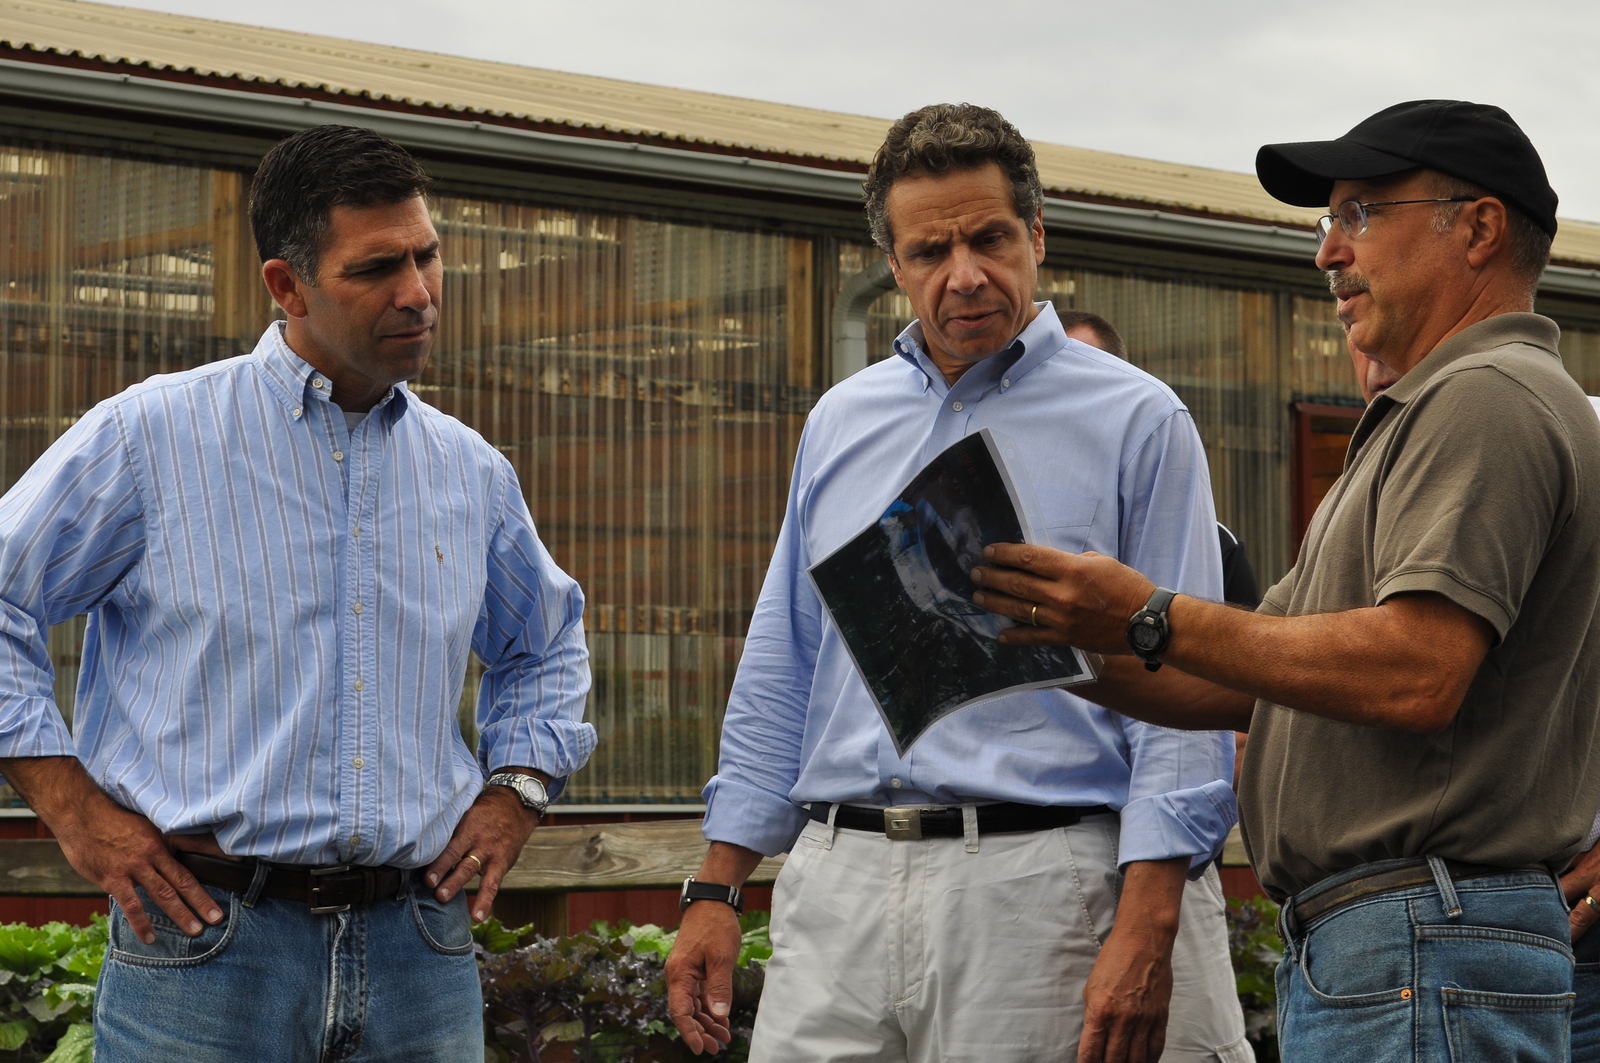 Hurricane/Tropical Storm - New Paltz, N. Y. , September 22, 2011 -- Governor Cuomo tours Wallkill View Farms with Mike Hein (Ulster County Executive), and Peter Ferrante (co-owner of Wallkil View Farms). Photo by Elissa Jun/FEMA